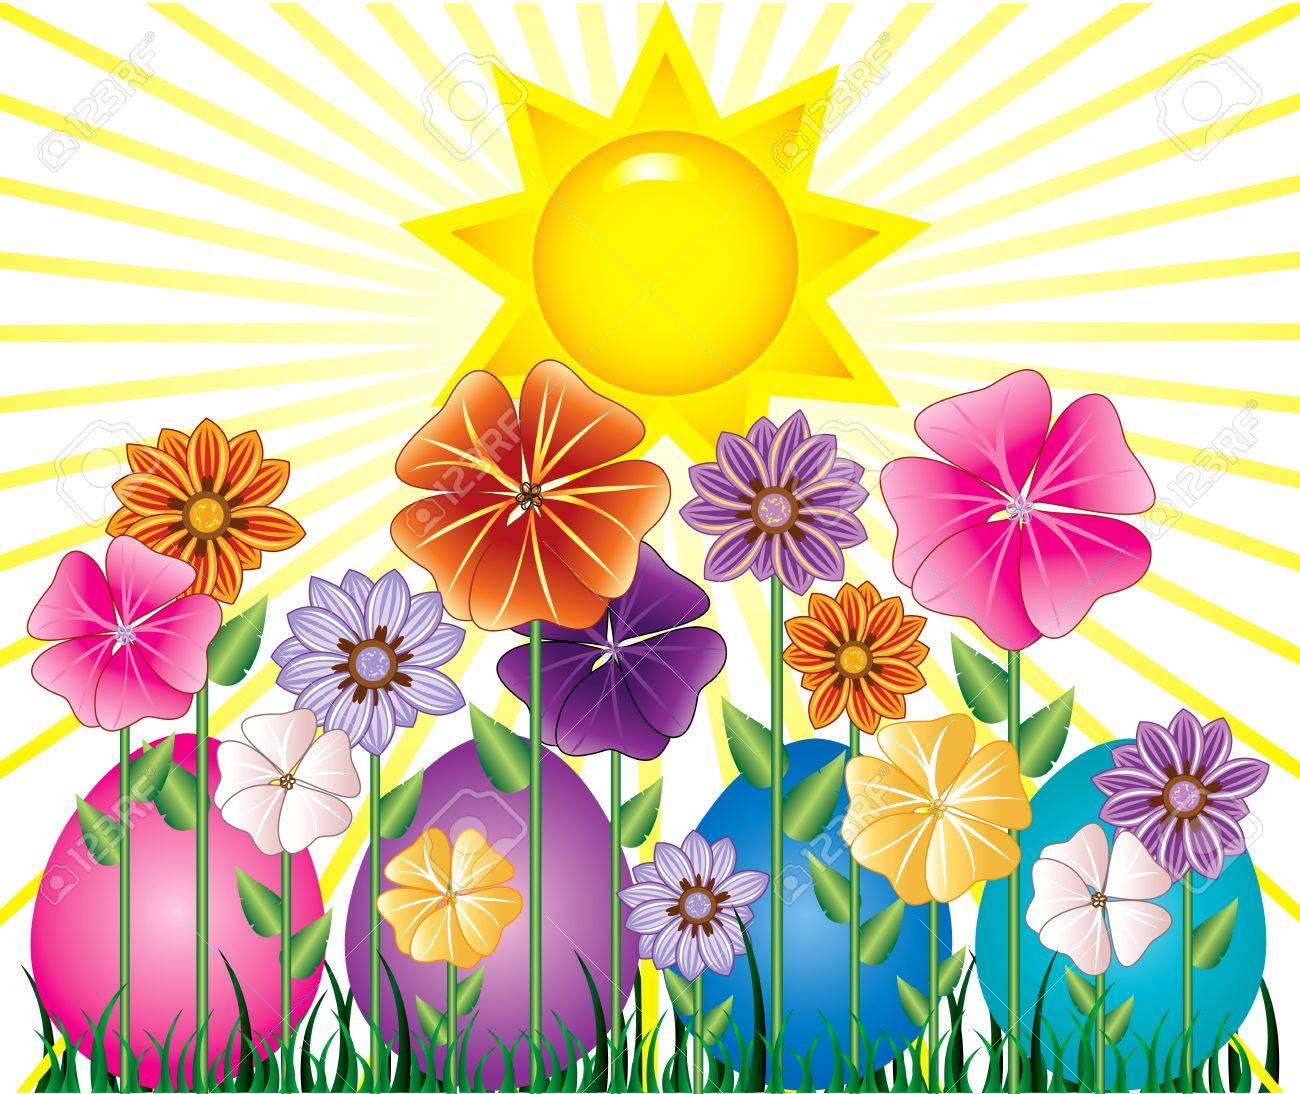 Vector illstration of a Spring Day with Sunshine and Easter Egg Garden with grass. - 9274980